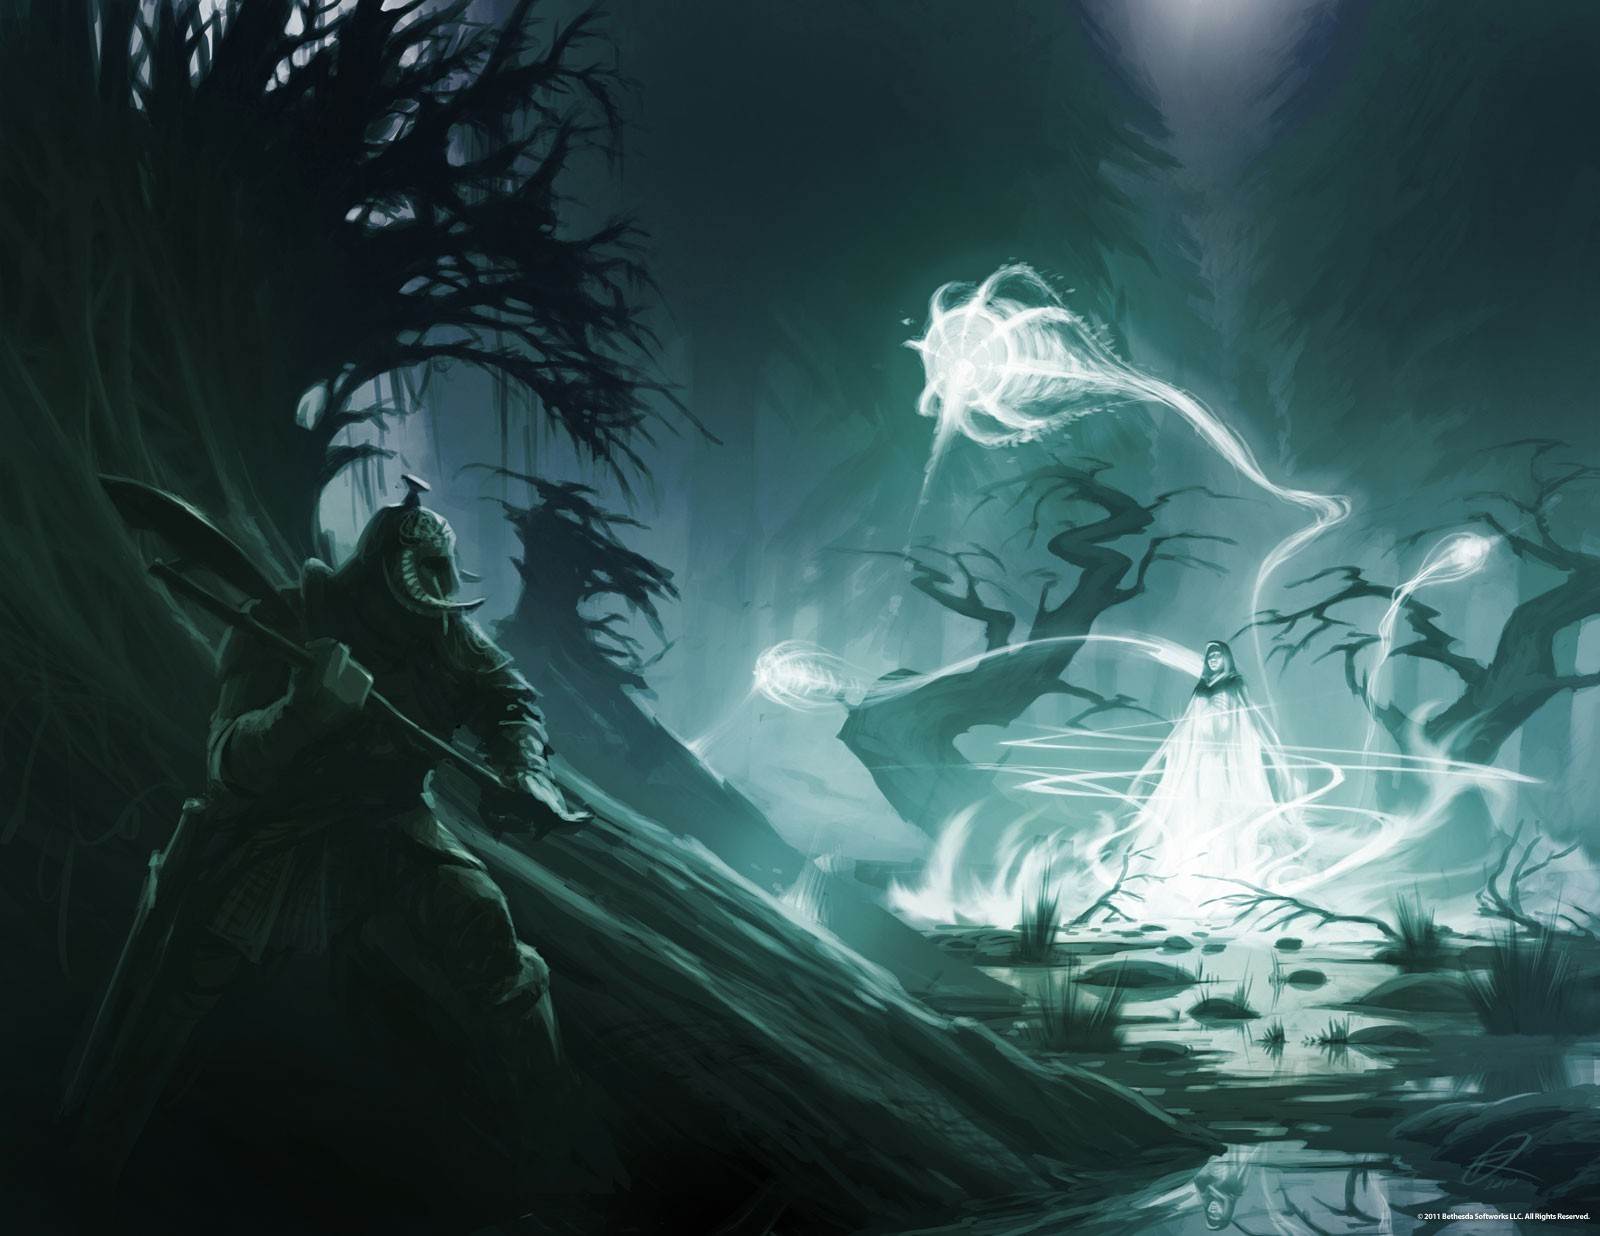 the elder scrolls v skyrim artwork fantasy art